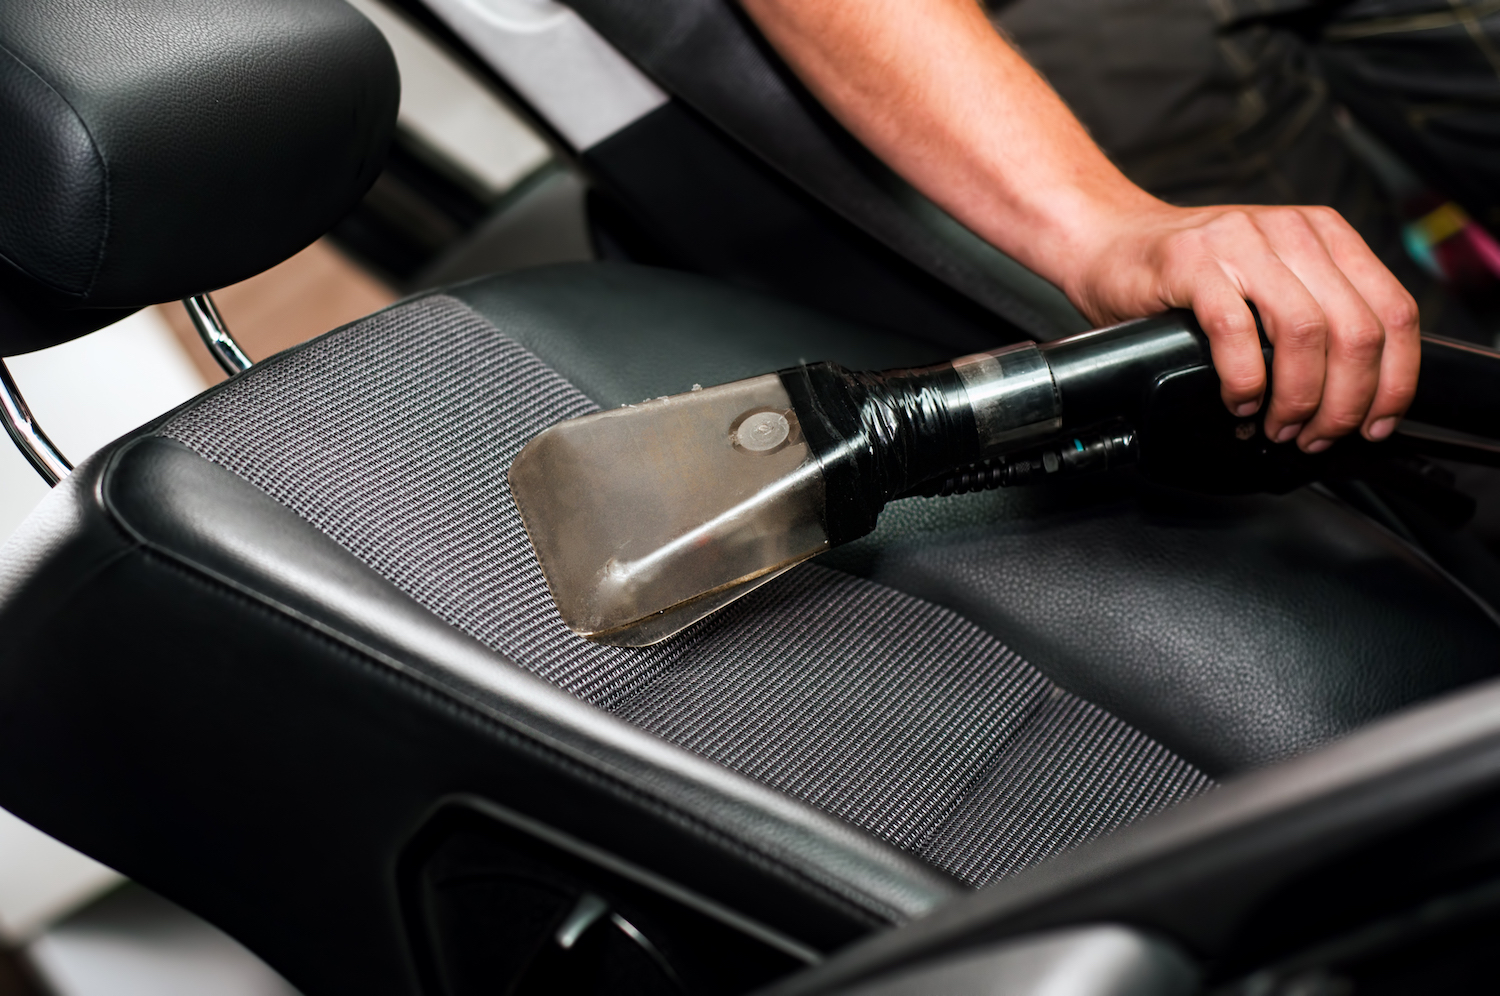 Auto car service cleaning the drivers seat, clealing and vacuuming leather